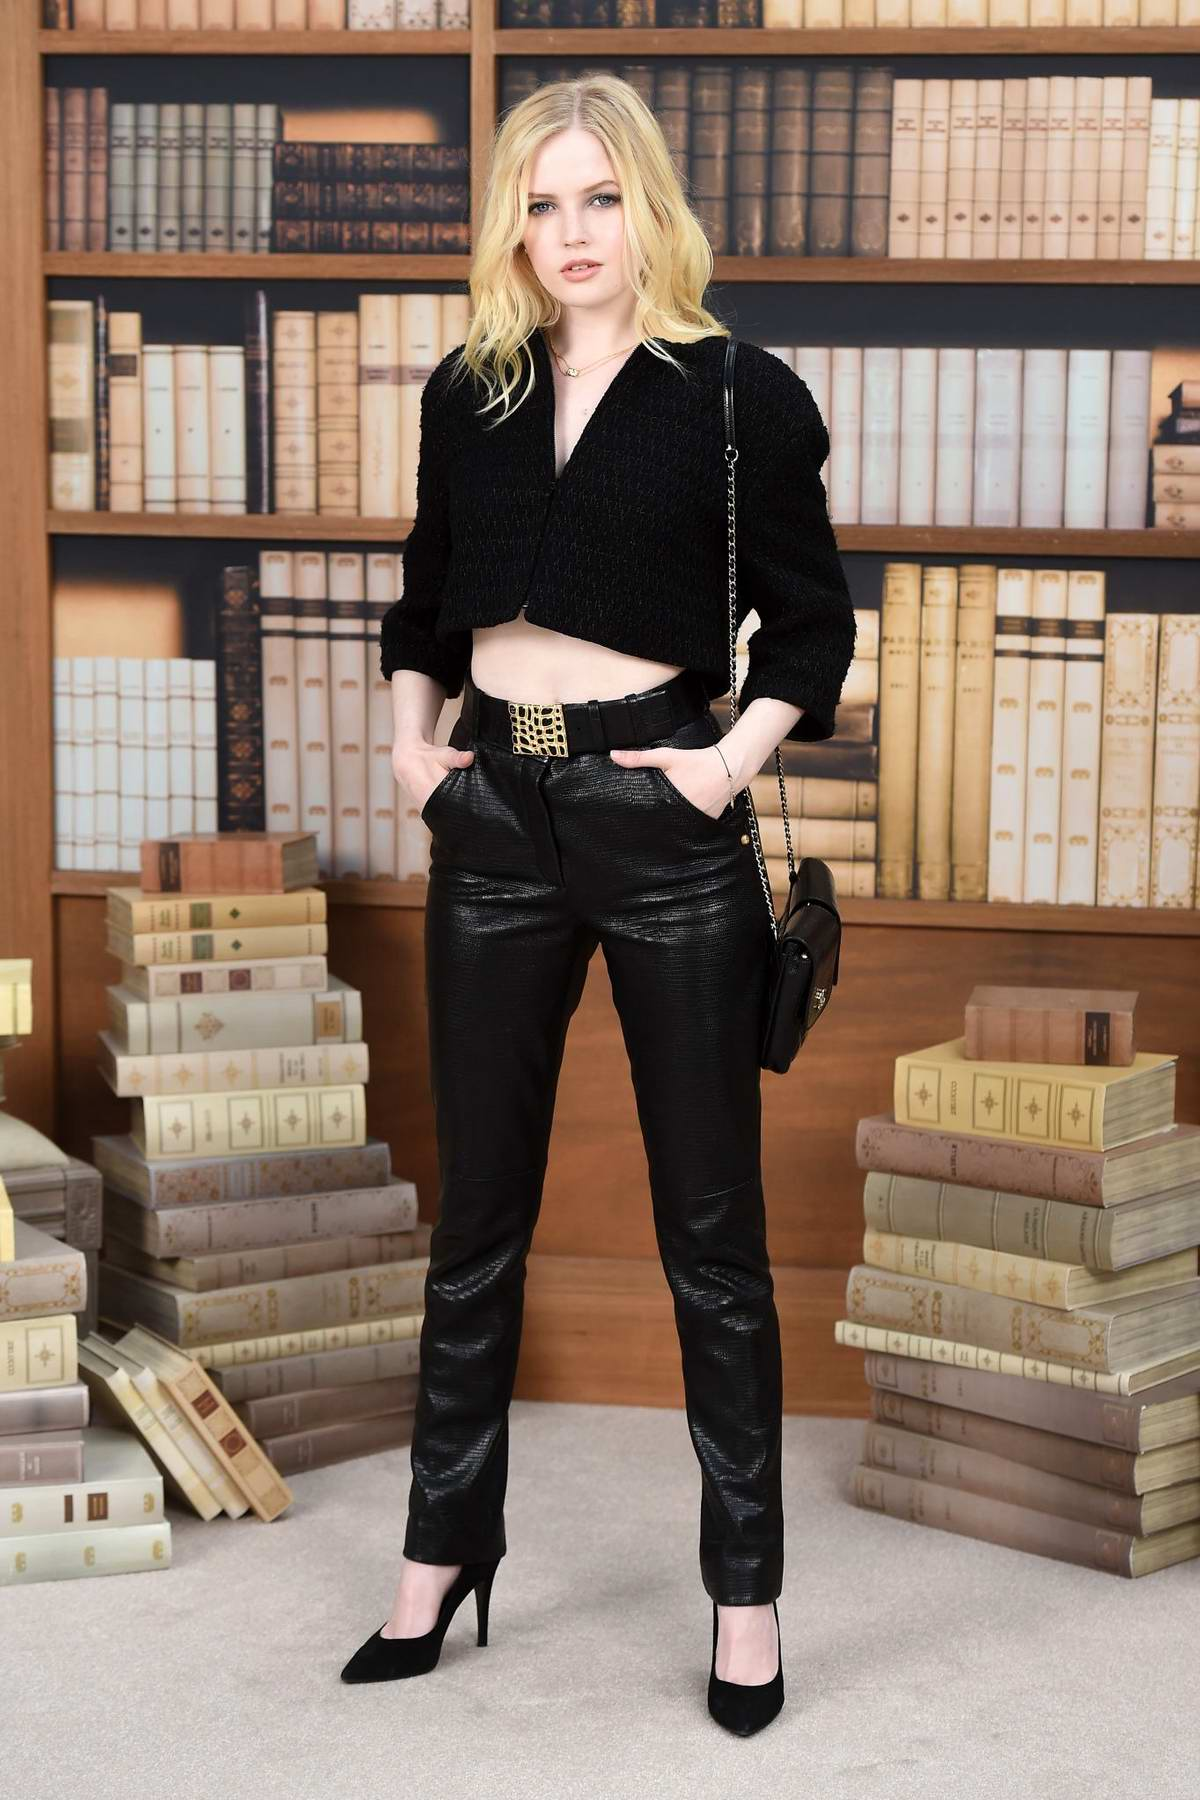 Ellie Bamber attends the Chanel Show, Haute Couture Fall/Winter 2019/20 during Paris Fashion Week in Paris, France